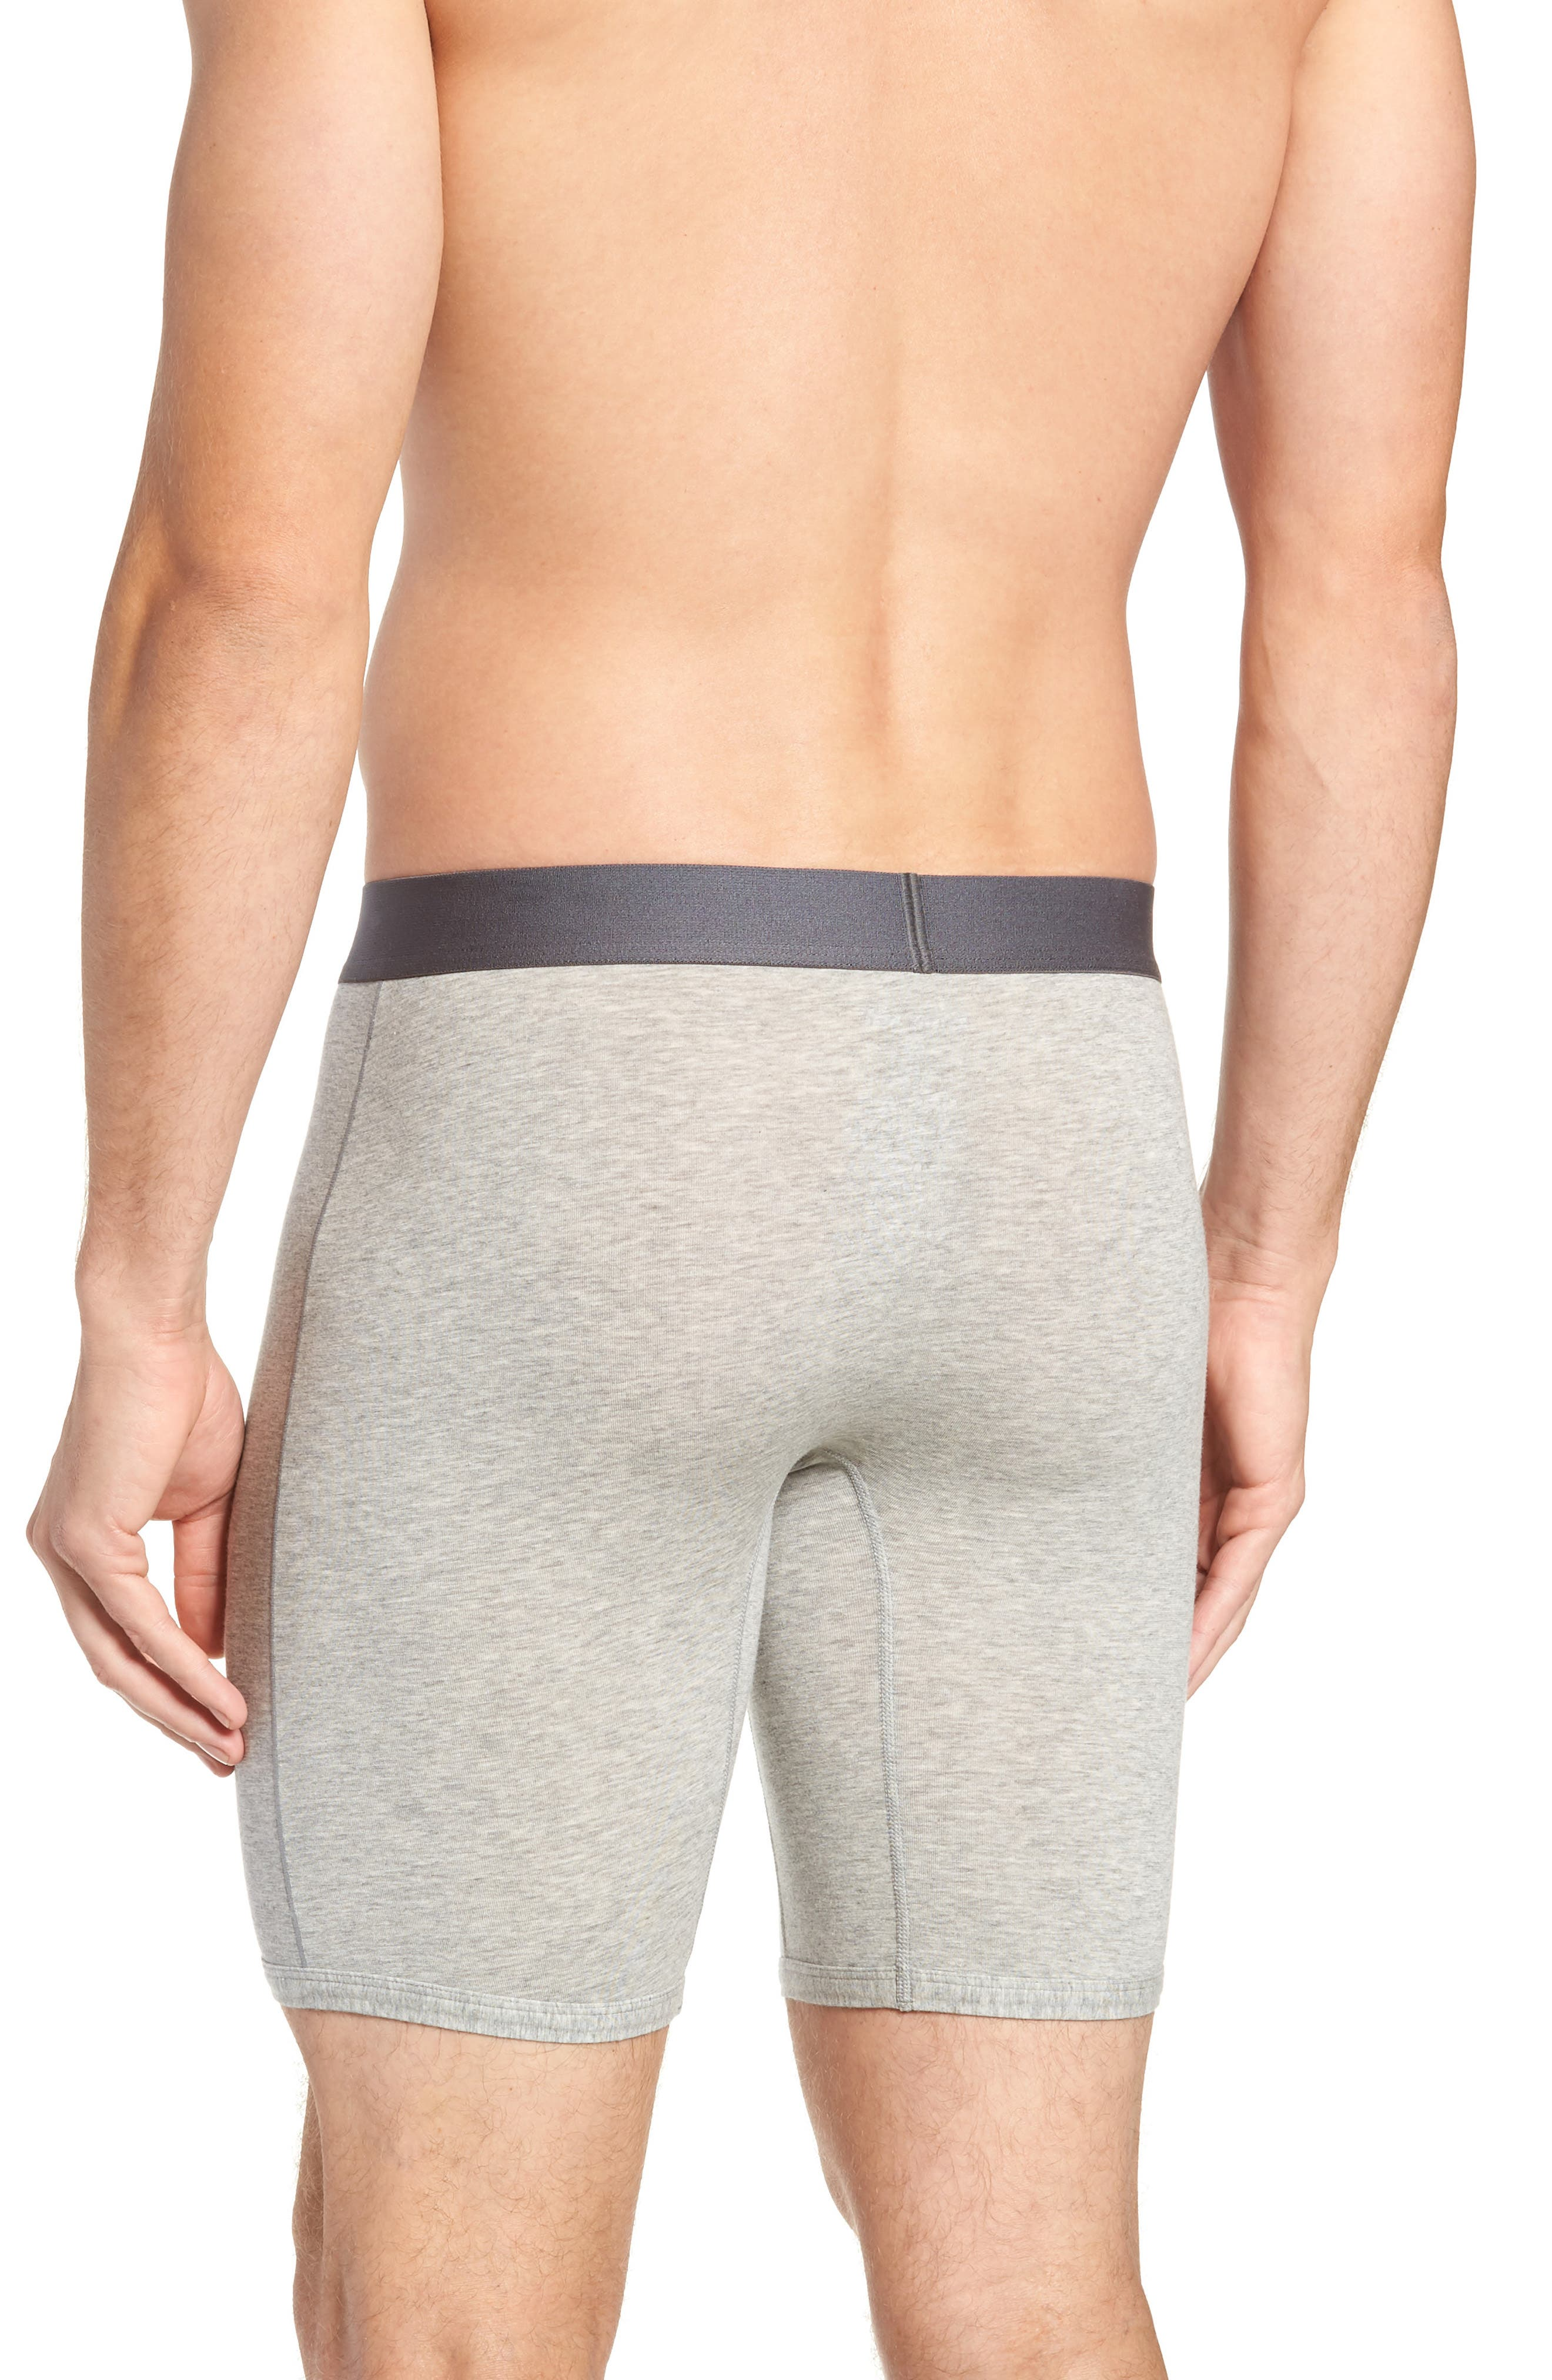 Cool Cotton Briefs,                             Alternate thumbnail 2, color,                             GREY HEATHER